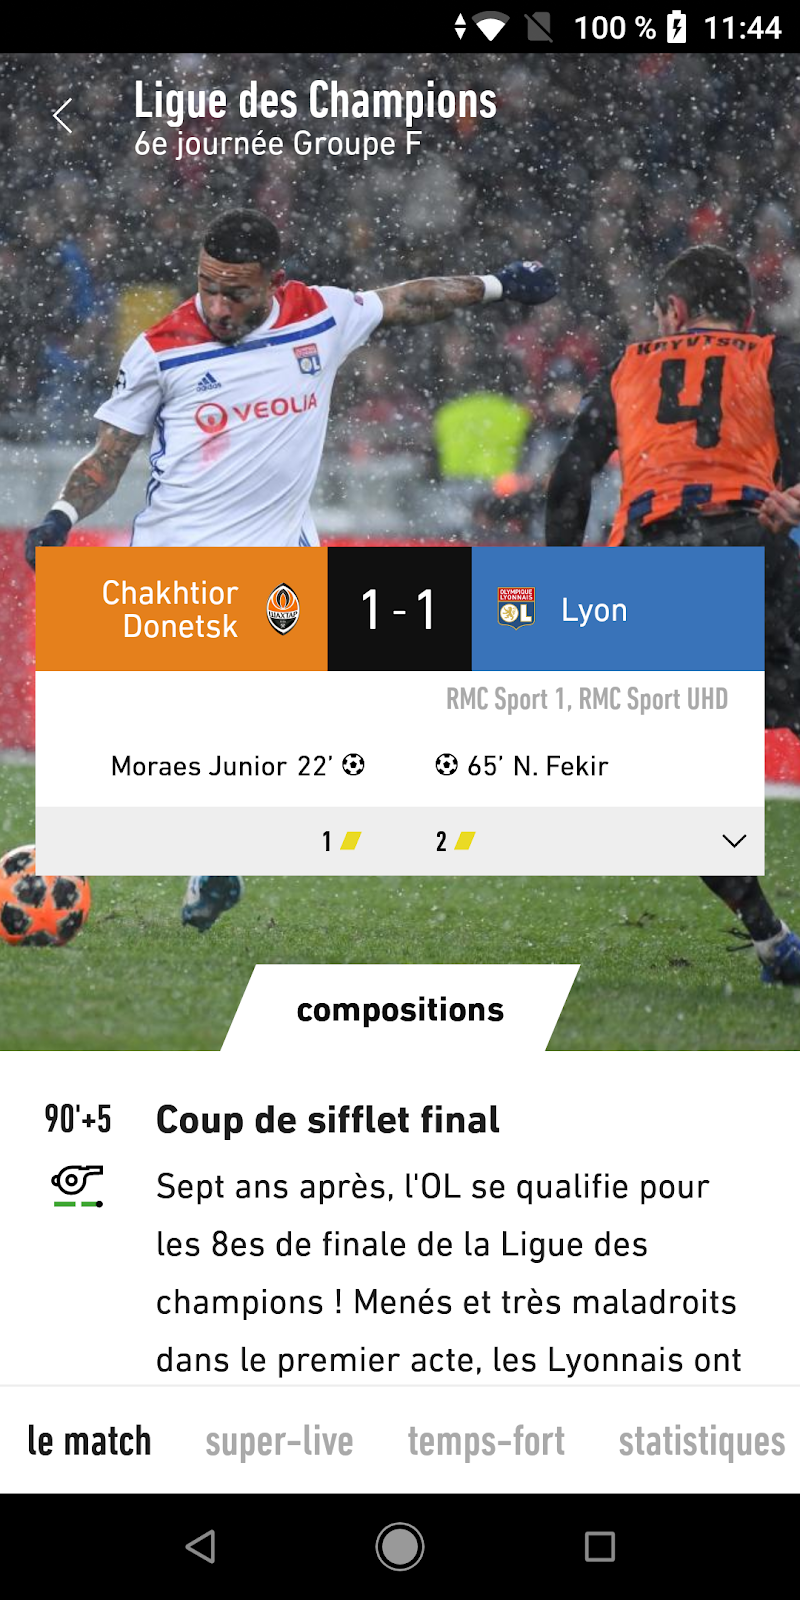 L'Équipe - Sport en direct : foot, tennis, rugby.. Screenshot 2